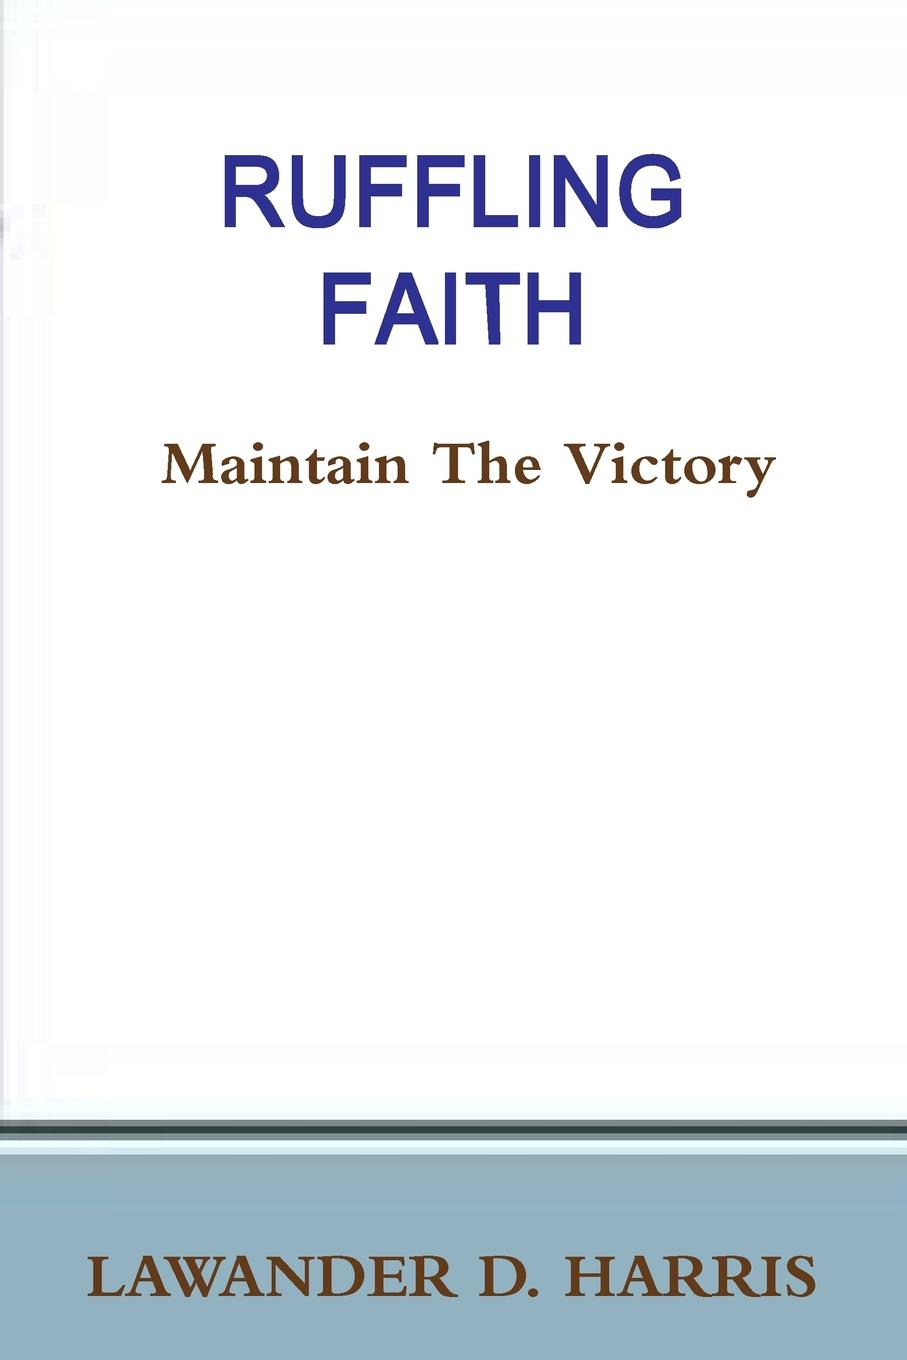 Lawander Harris RUFFLING FAITH - Maintain The Victory janice canerdy expressions of faith page 4